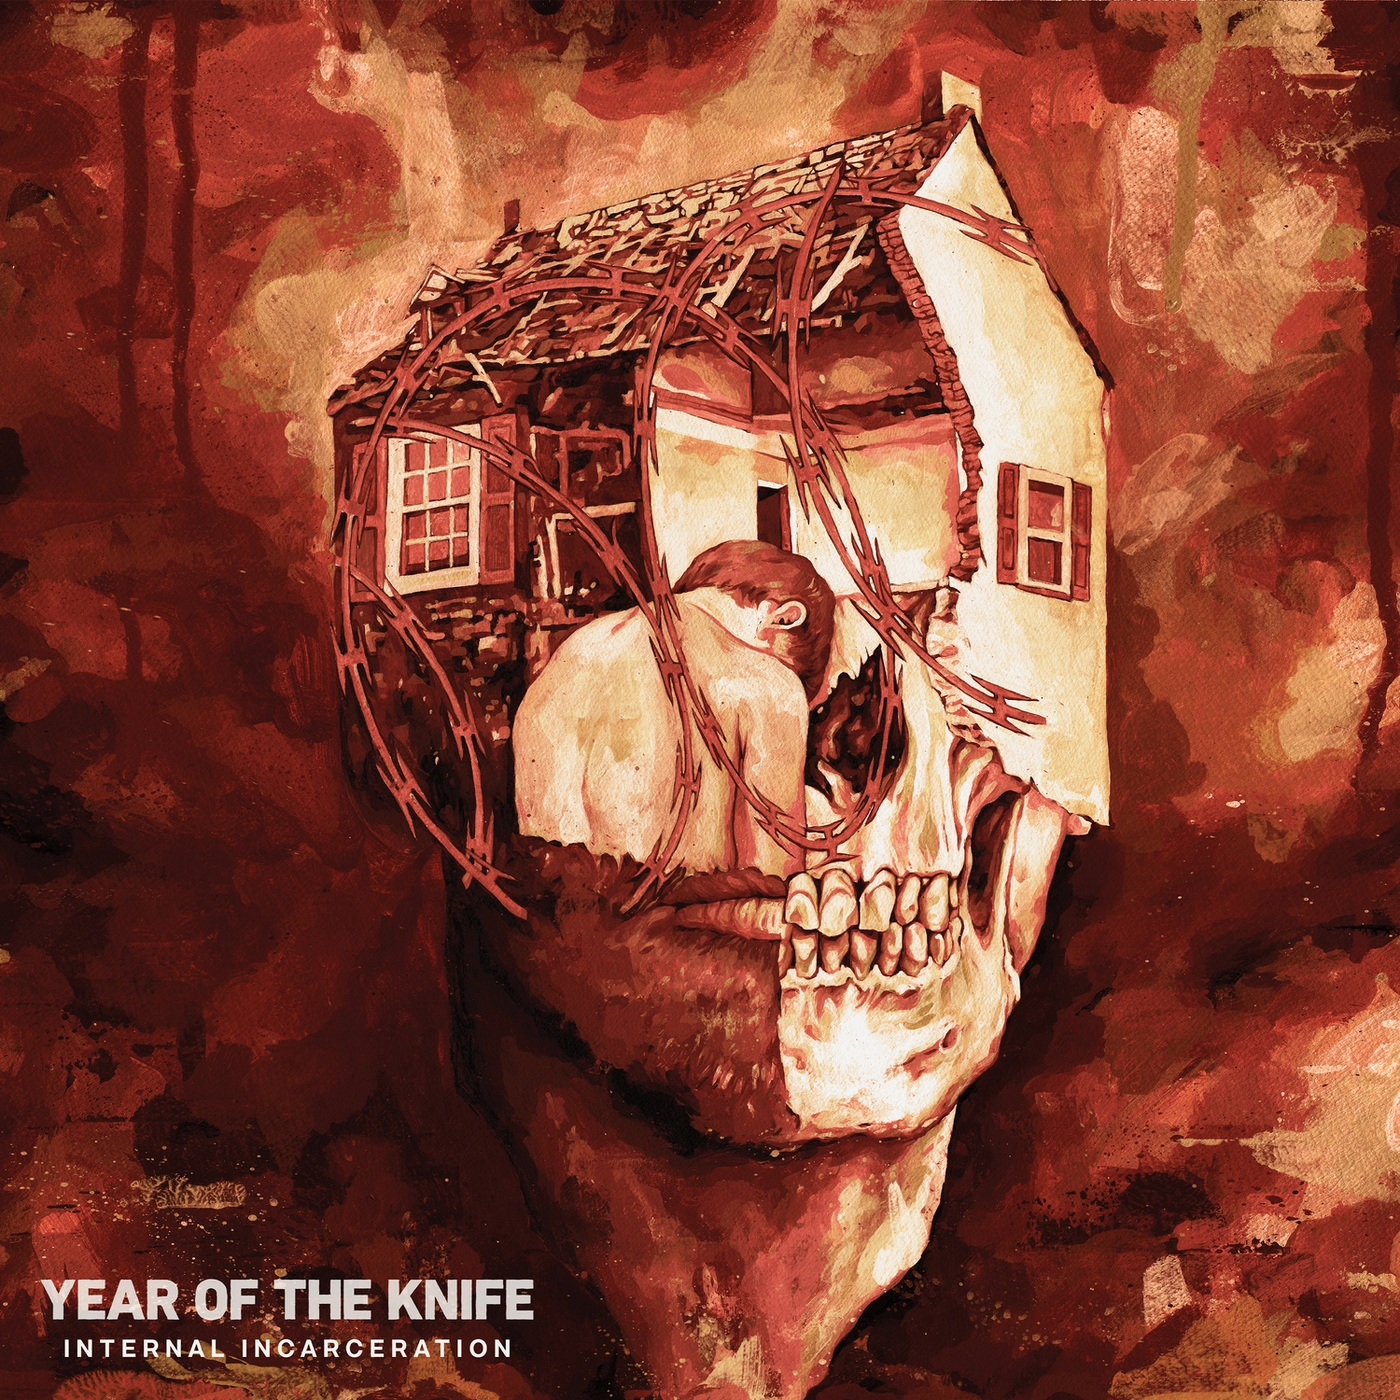 Year of the Knife - Premonitions of You [single] (2020)